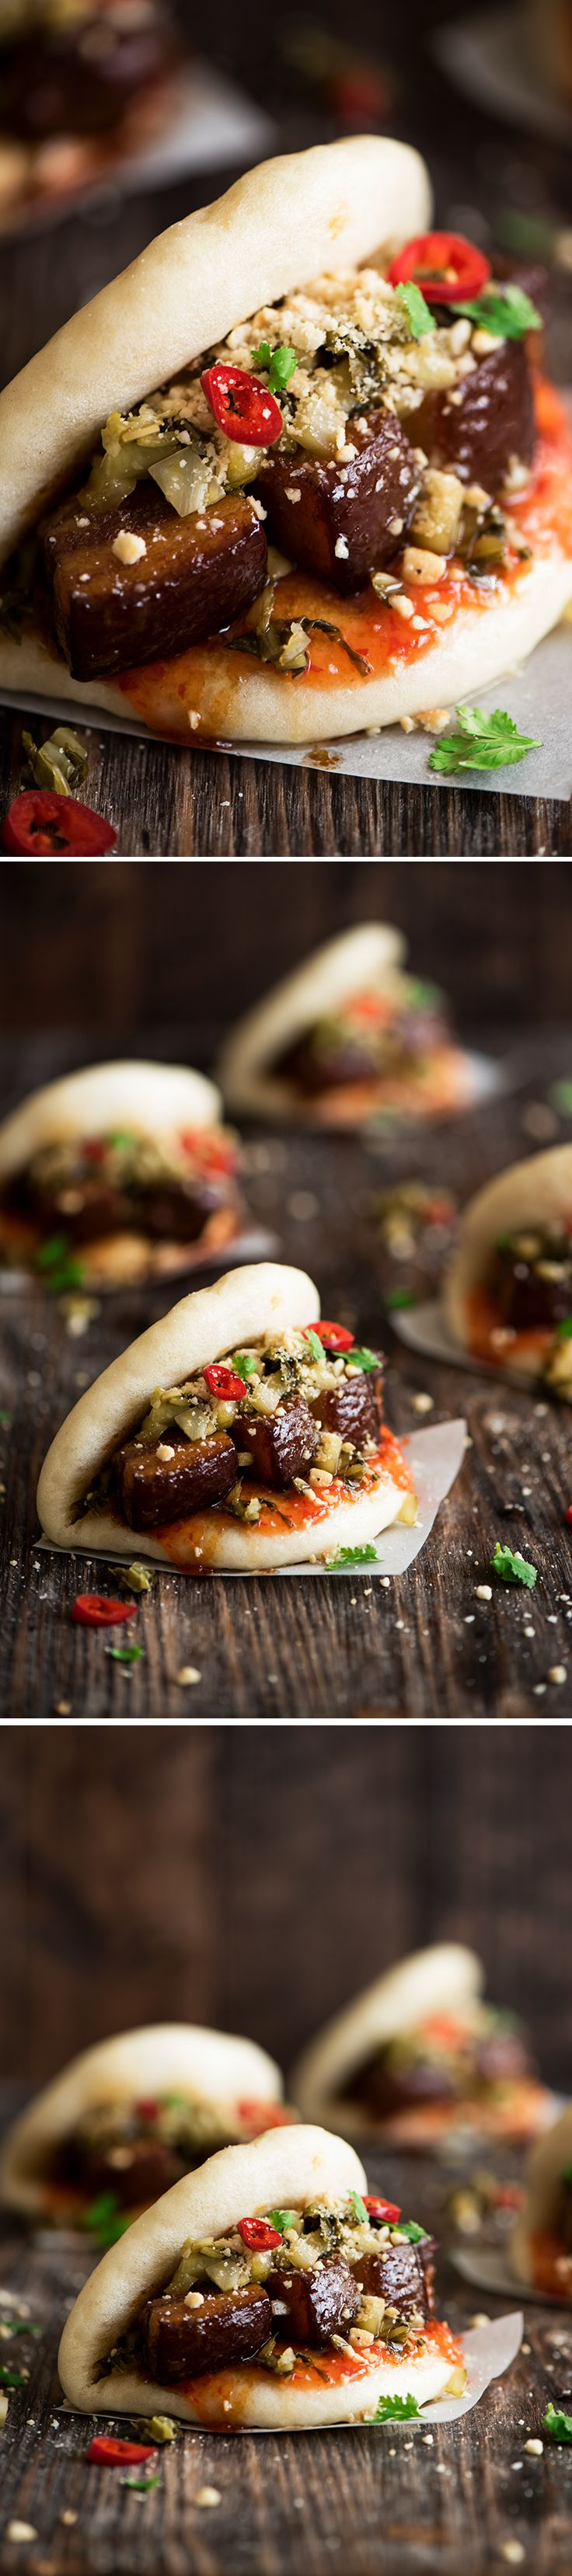 Melt in the mouth pork belly stuffed in soft, fluffy mantou (buns) with sweet & spicy chili sauce & crunchy sour pickled mustard greens.